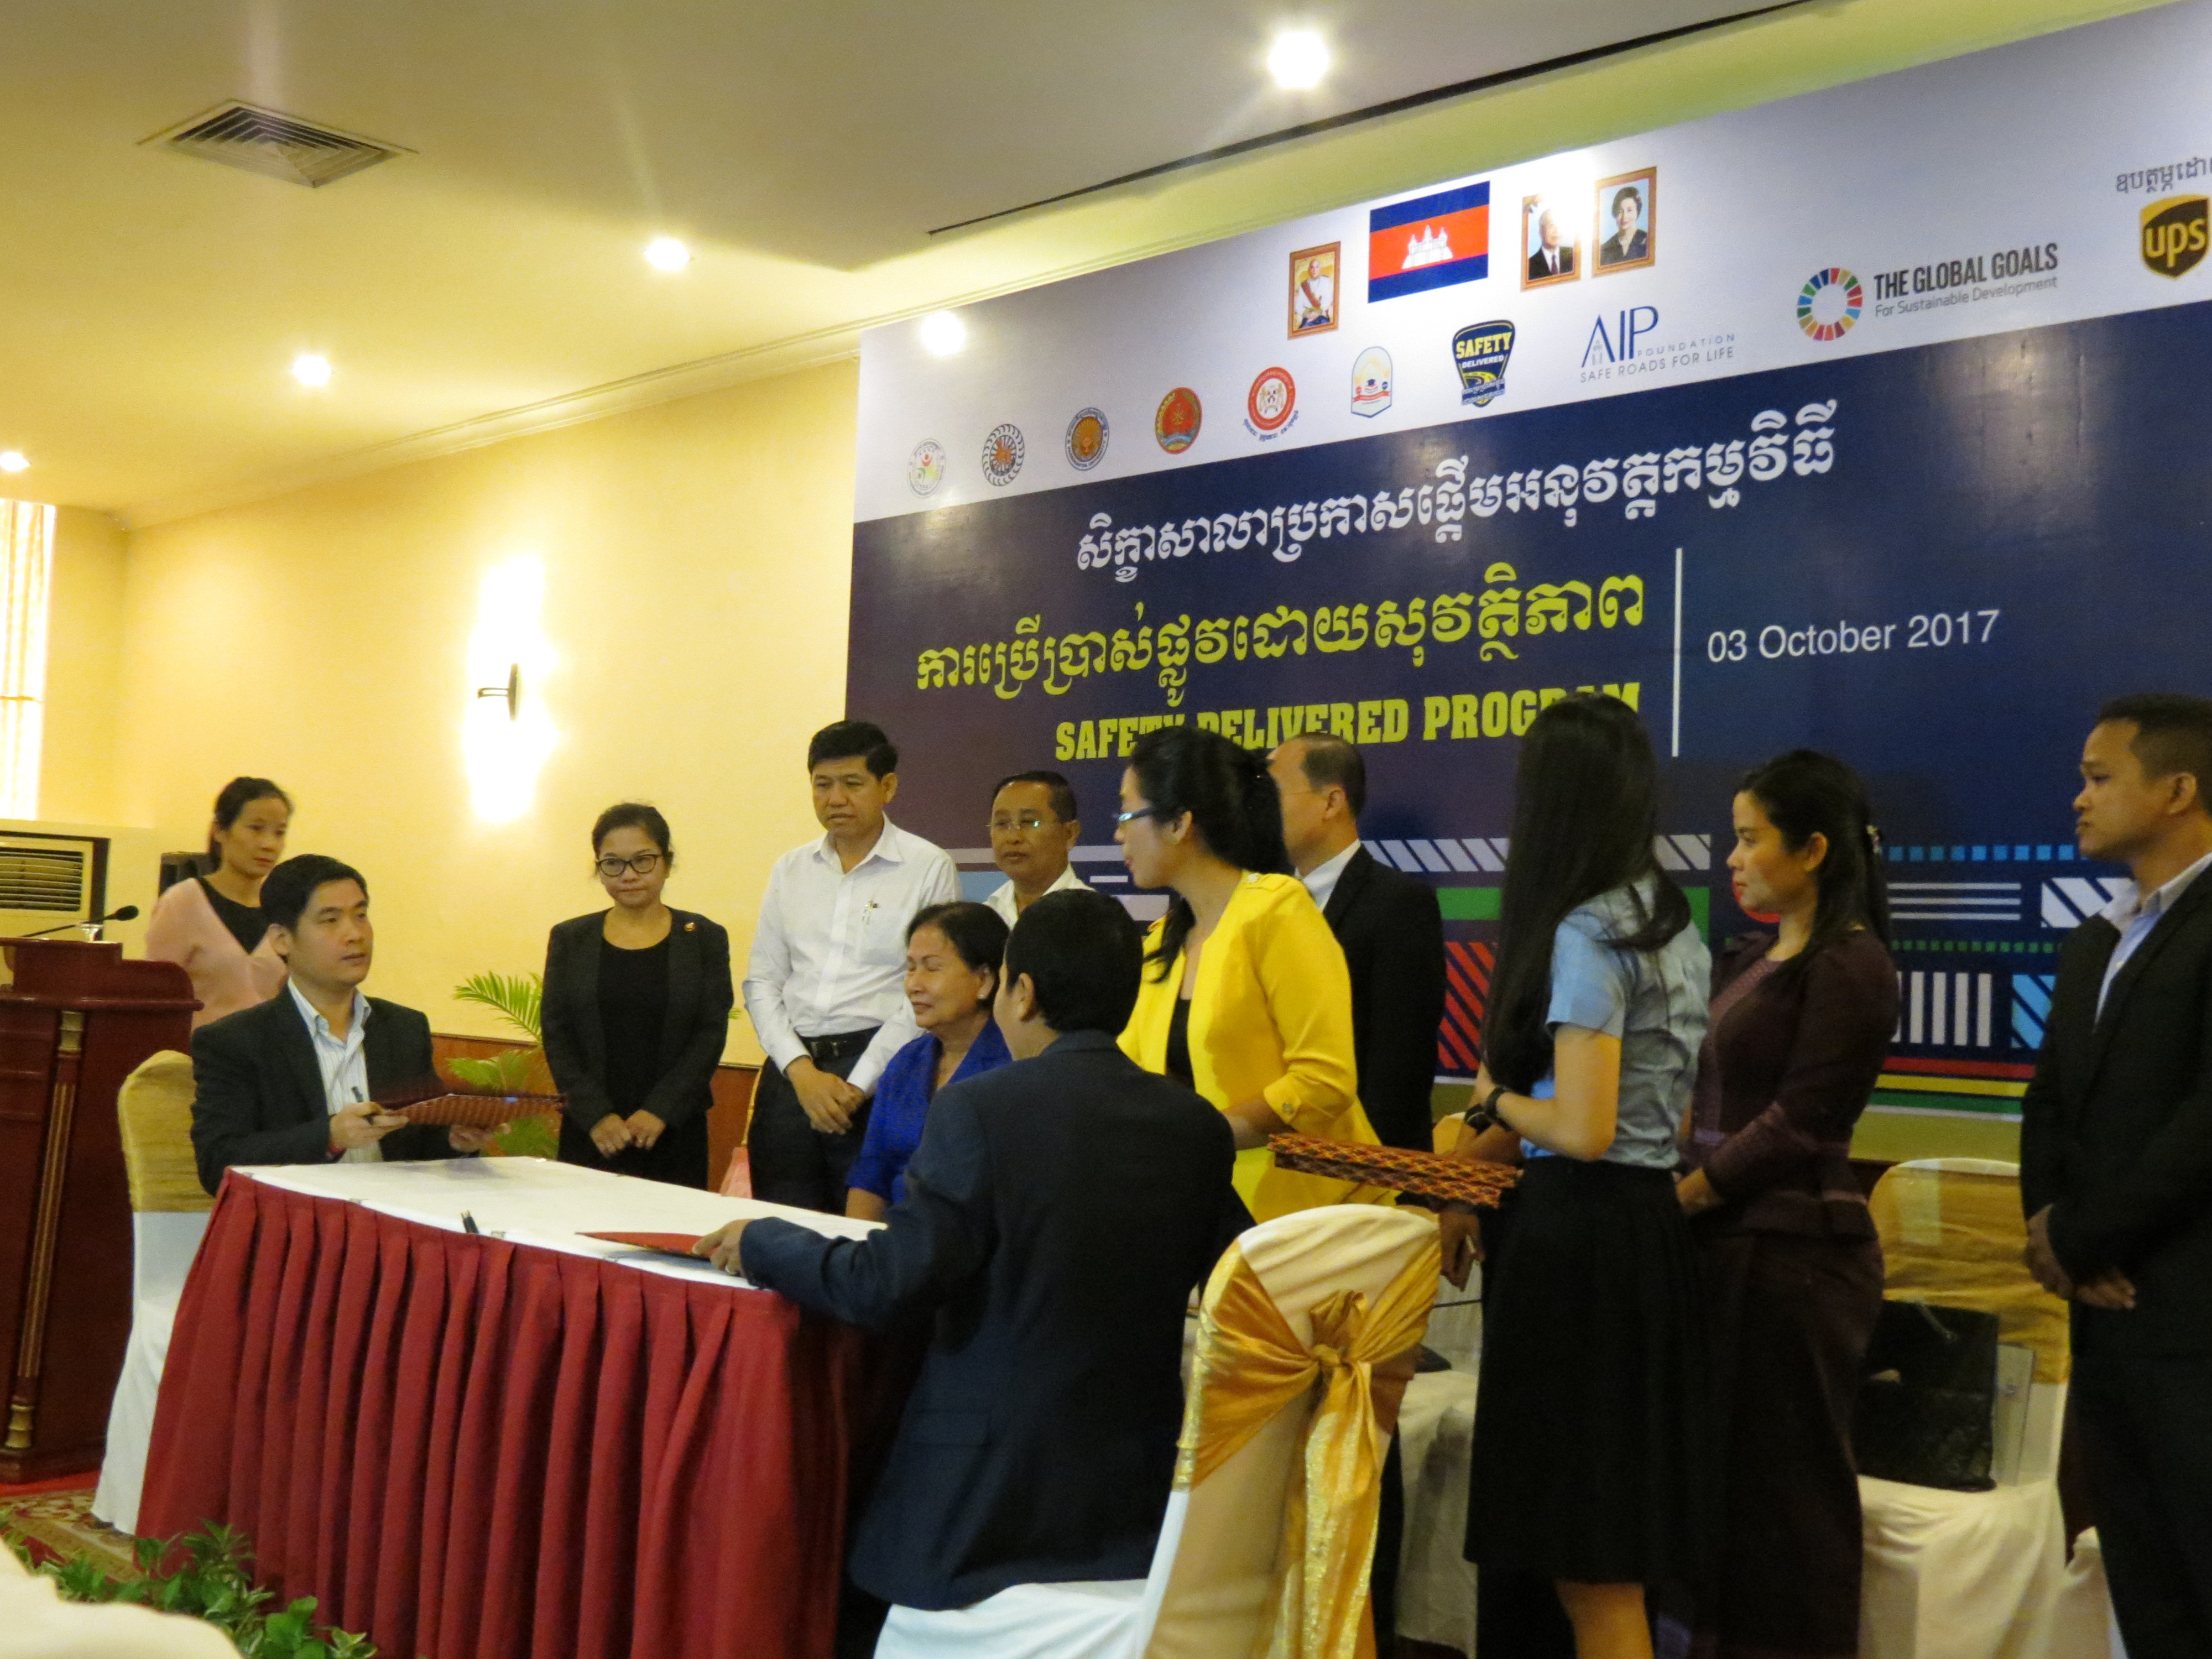 Road safety program launches in Cambodia, where young people account for 45% of road crash fatalities